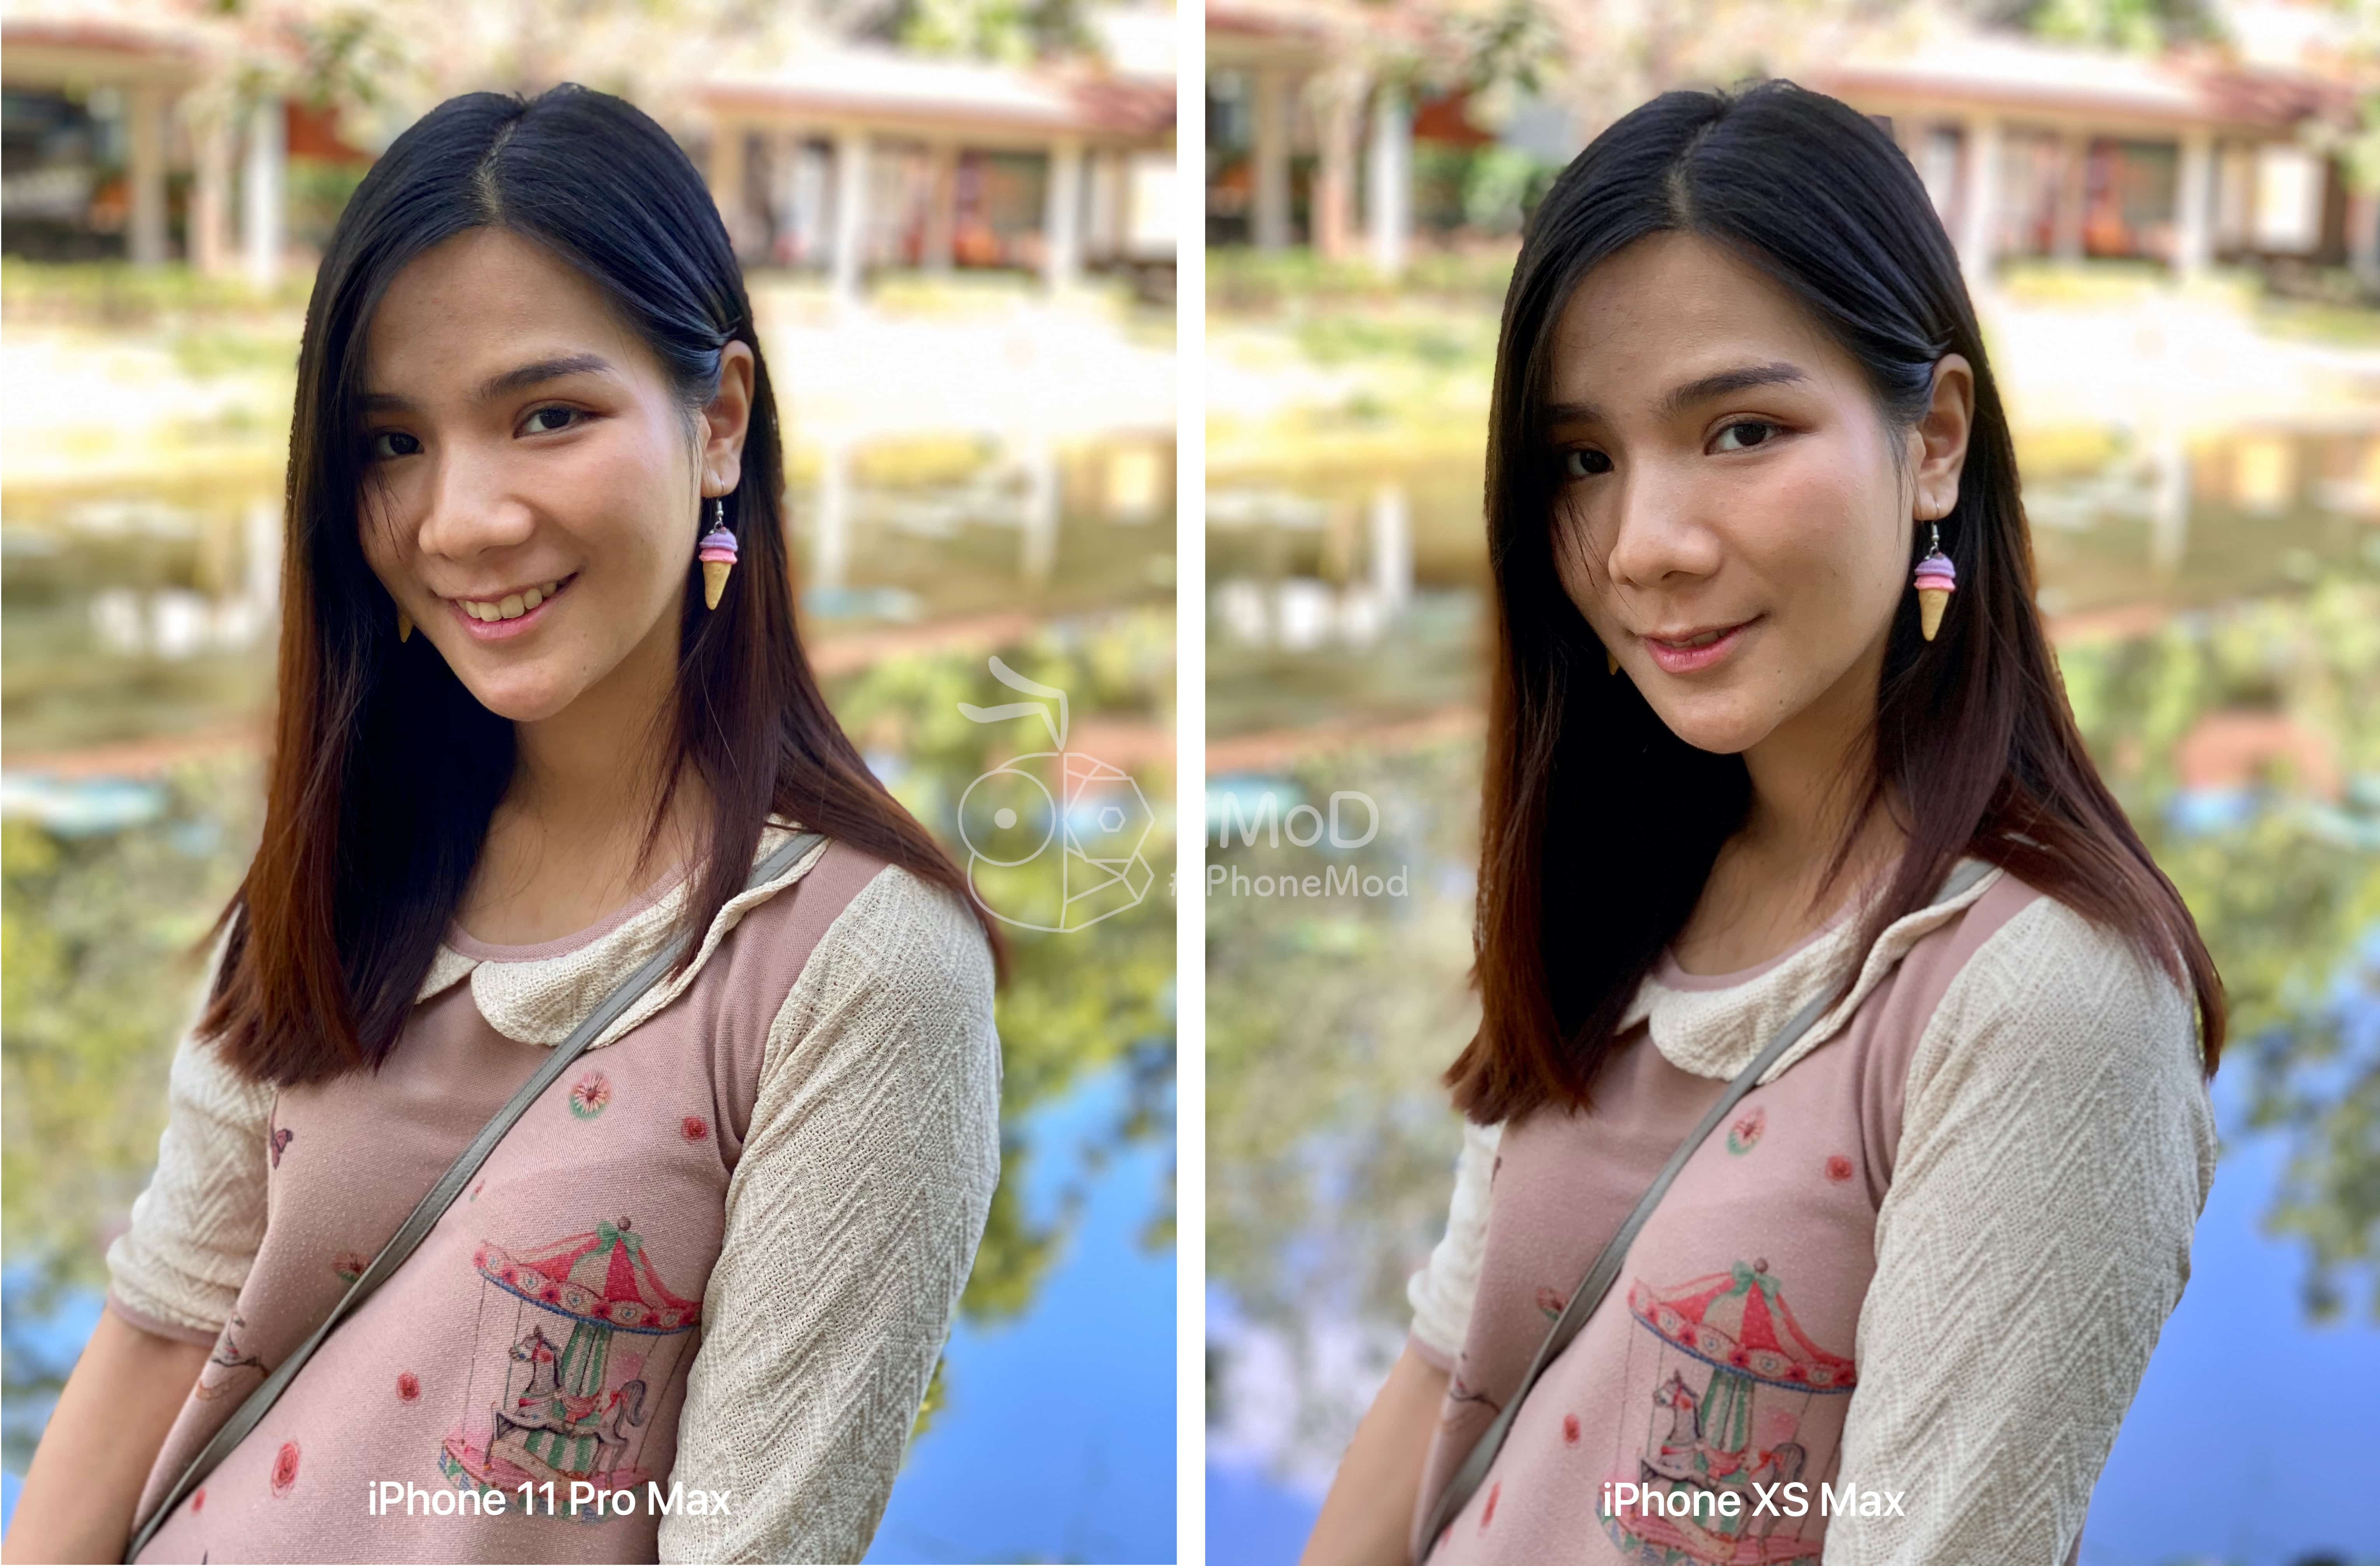 Iphone 11 Pro Max And Iphone Xs Max Portrait Compare Img 3